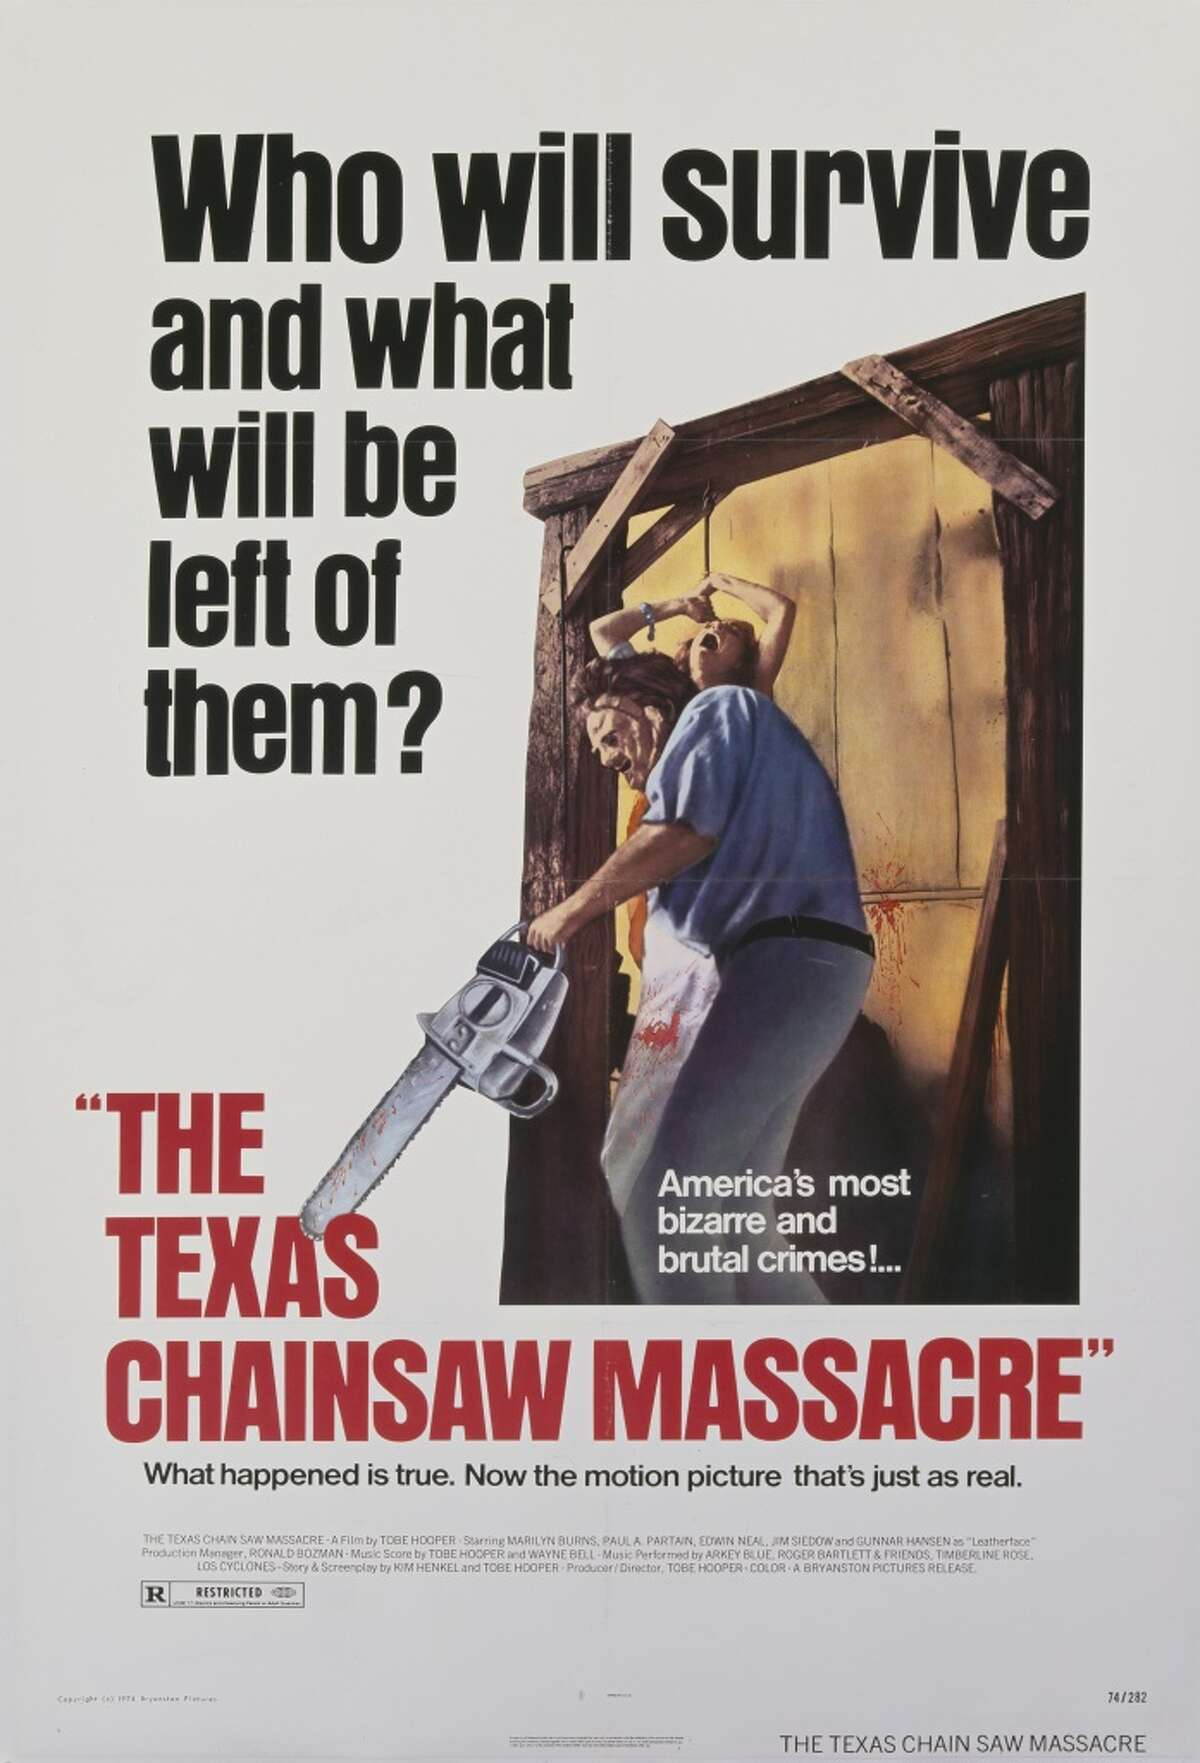 """The Texas Chainsaw Massacre: The 1974 version seems to be the one people like the most. With the name Texas in the headline, how could we have left it off? Little known fact: The movie is not actually based on a true story. """"Awesome drive-in movie."""" -- Truth-Hits-The-Fan"""